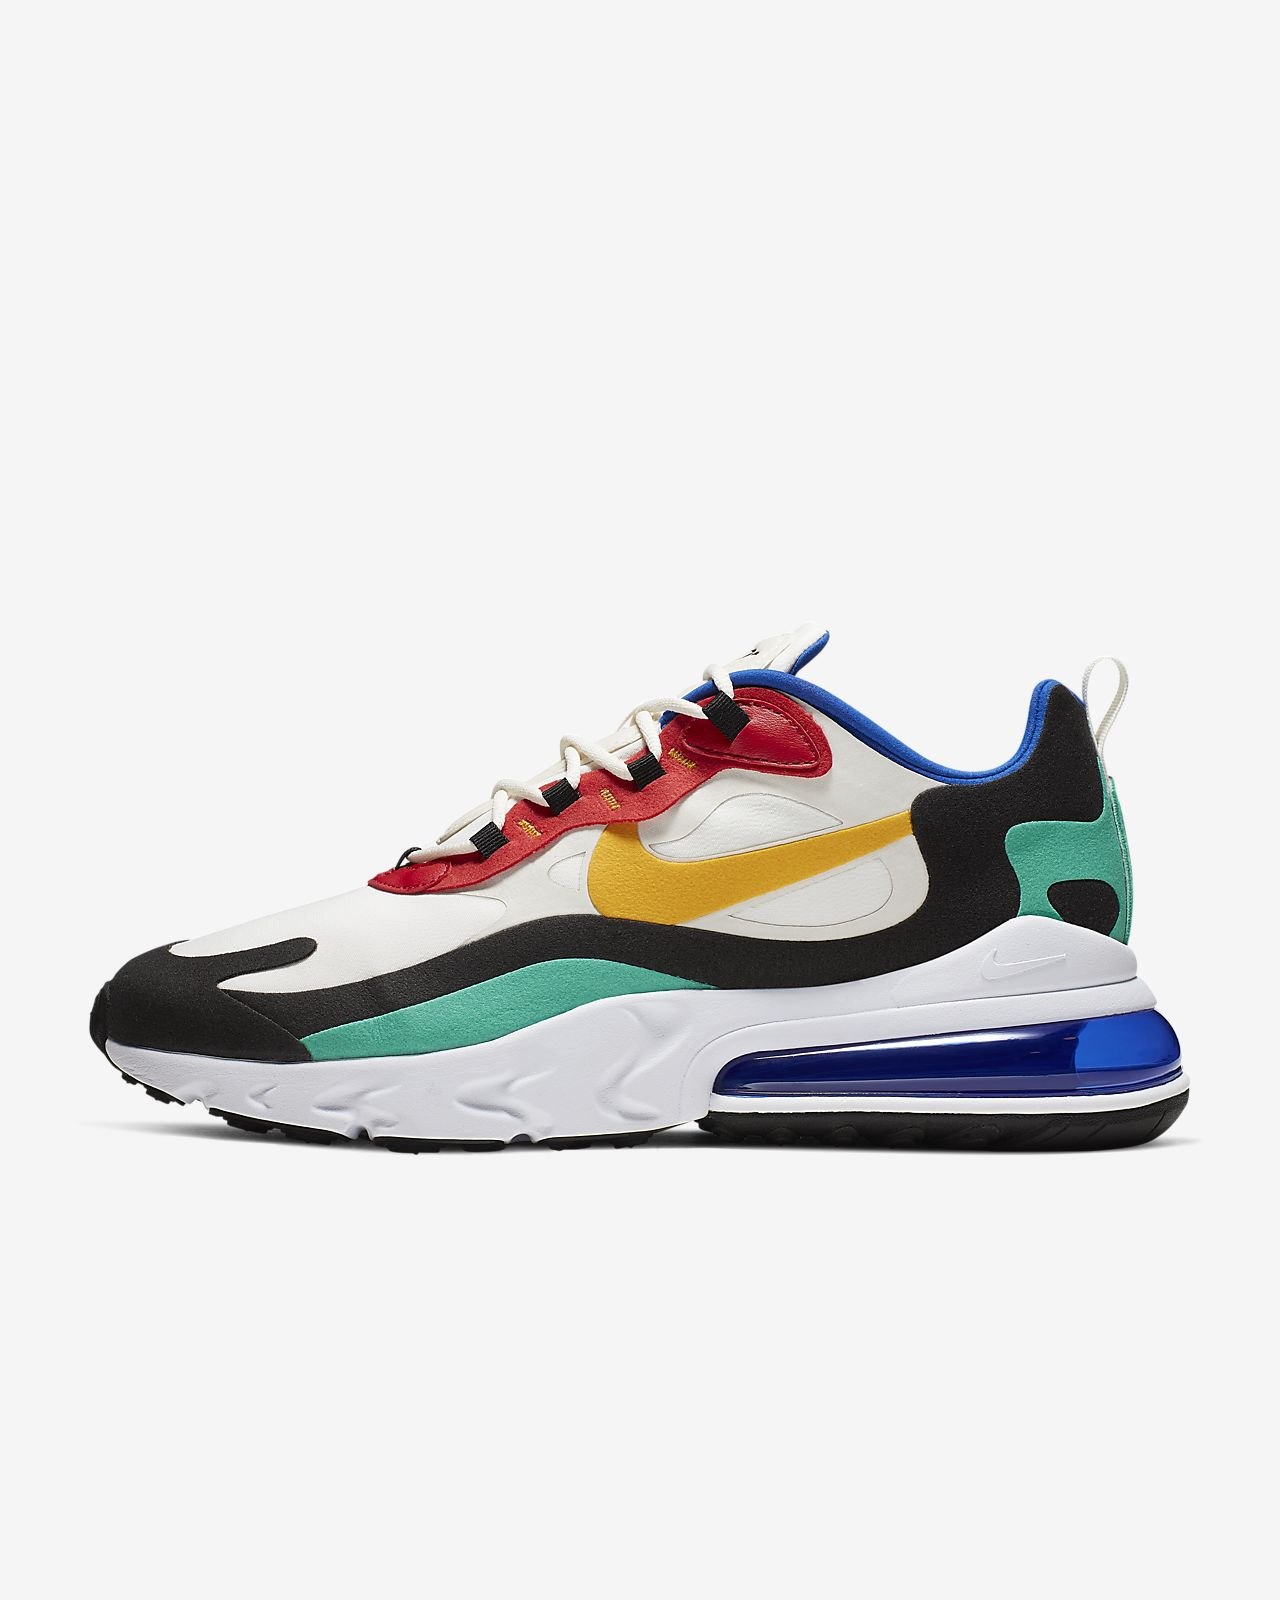 861b45677150f Nike Air Max 270 React Bauhaus Men's Shoes. Nike.com GB